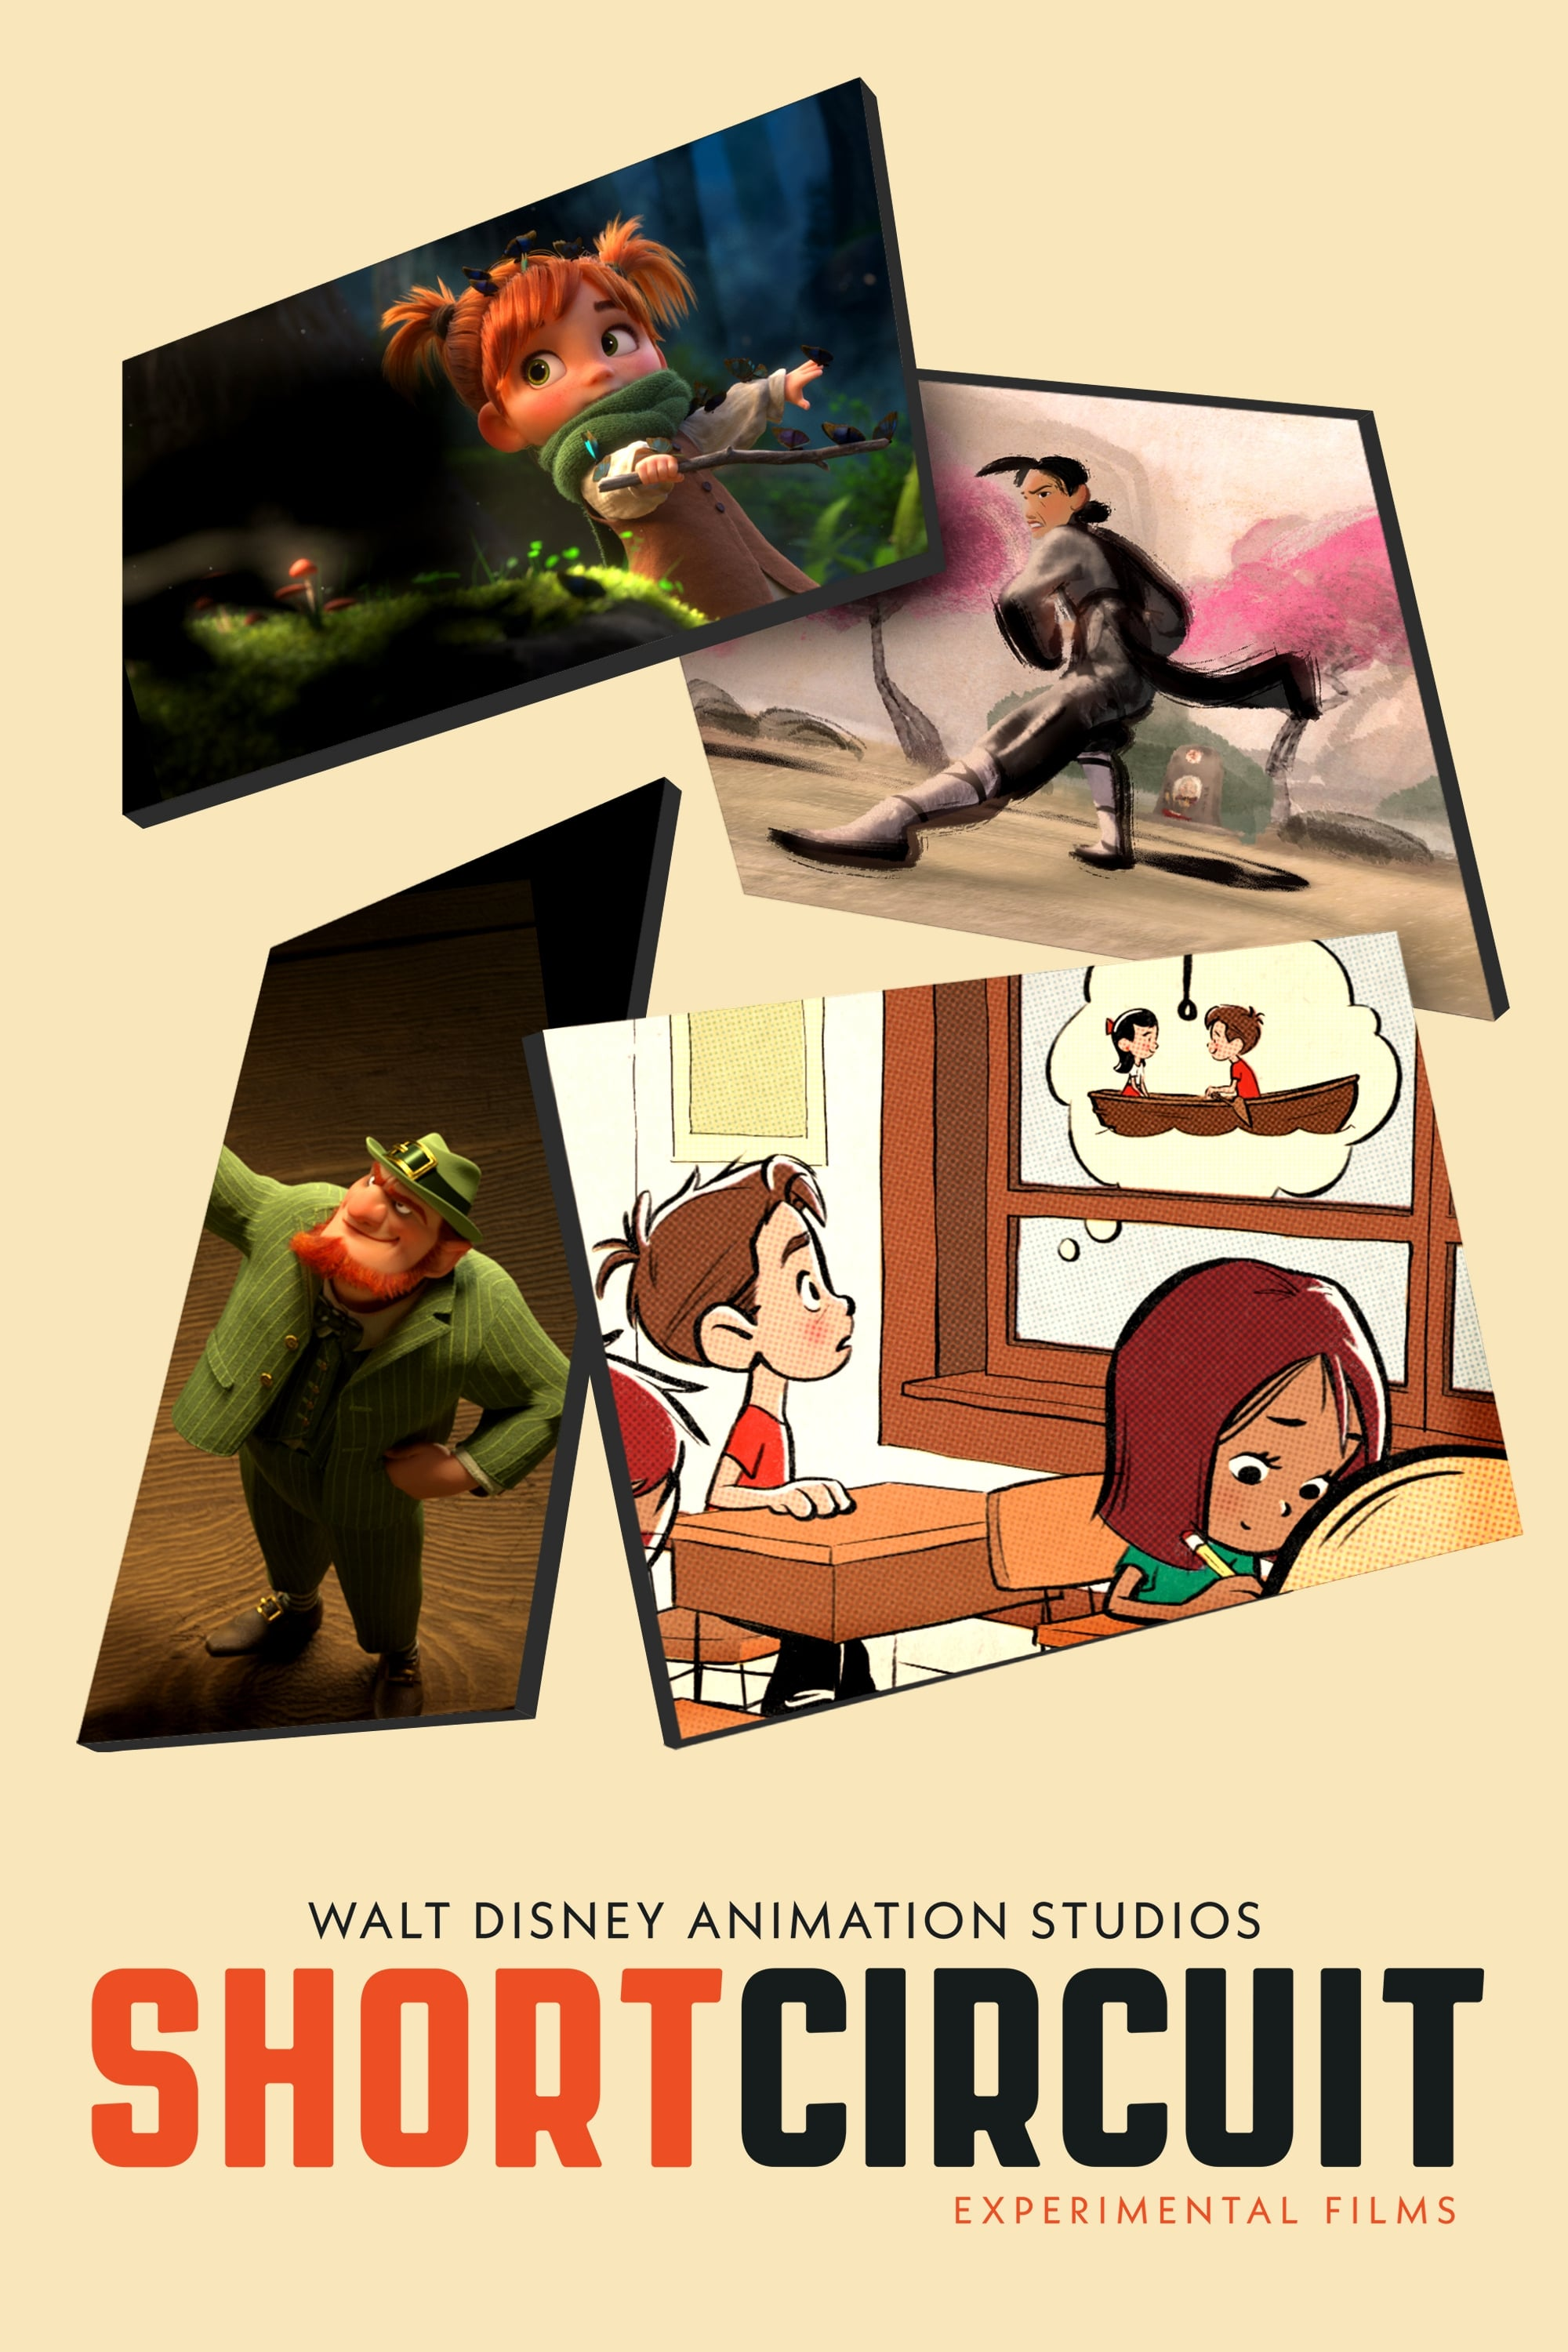 Walt Disney Animation Studios: Short Circuit Experimental Films Season 1